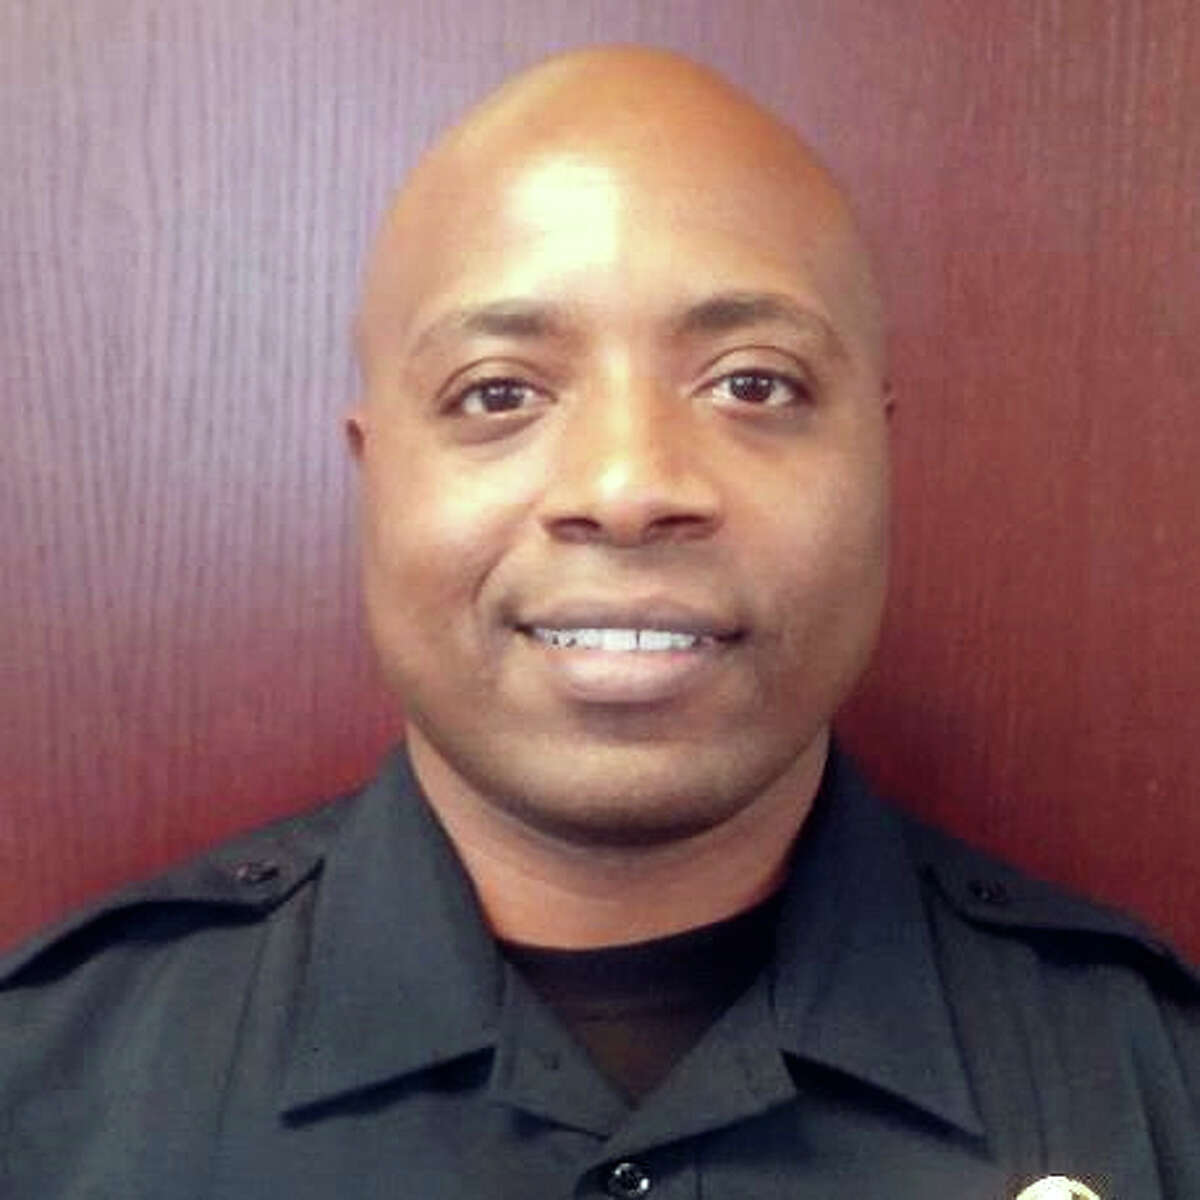 Officer Ken Johnson Where: Addison, Texas When: March 13, 2016What happened: The shooting happened at a gas station in Addison, Texas. Officials have said that the off duty Farmers Branch officer saw a vehicle being burglarized in his apartment complex parking lot and that he gave chase when the suspects fled. After the suspects' vehicle spun out about a half-mile away, an altercation led to the shooting. Johnson was charged with murder and aggravated assault.